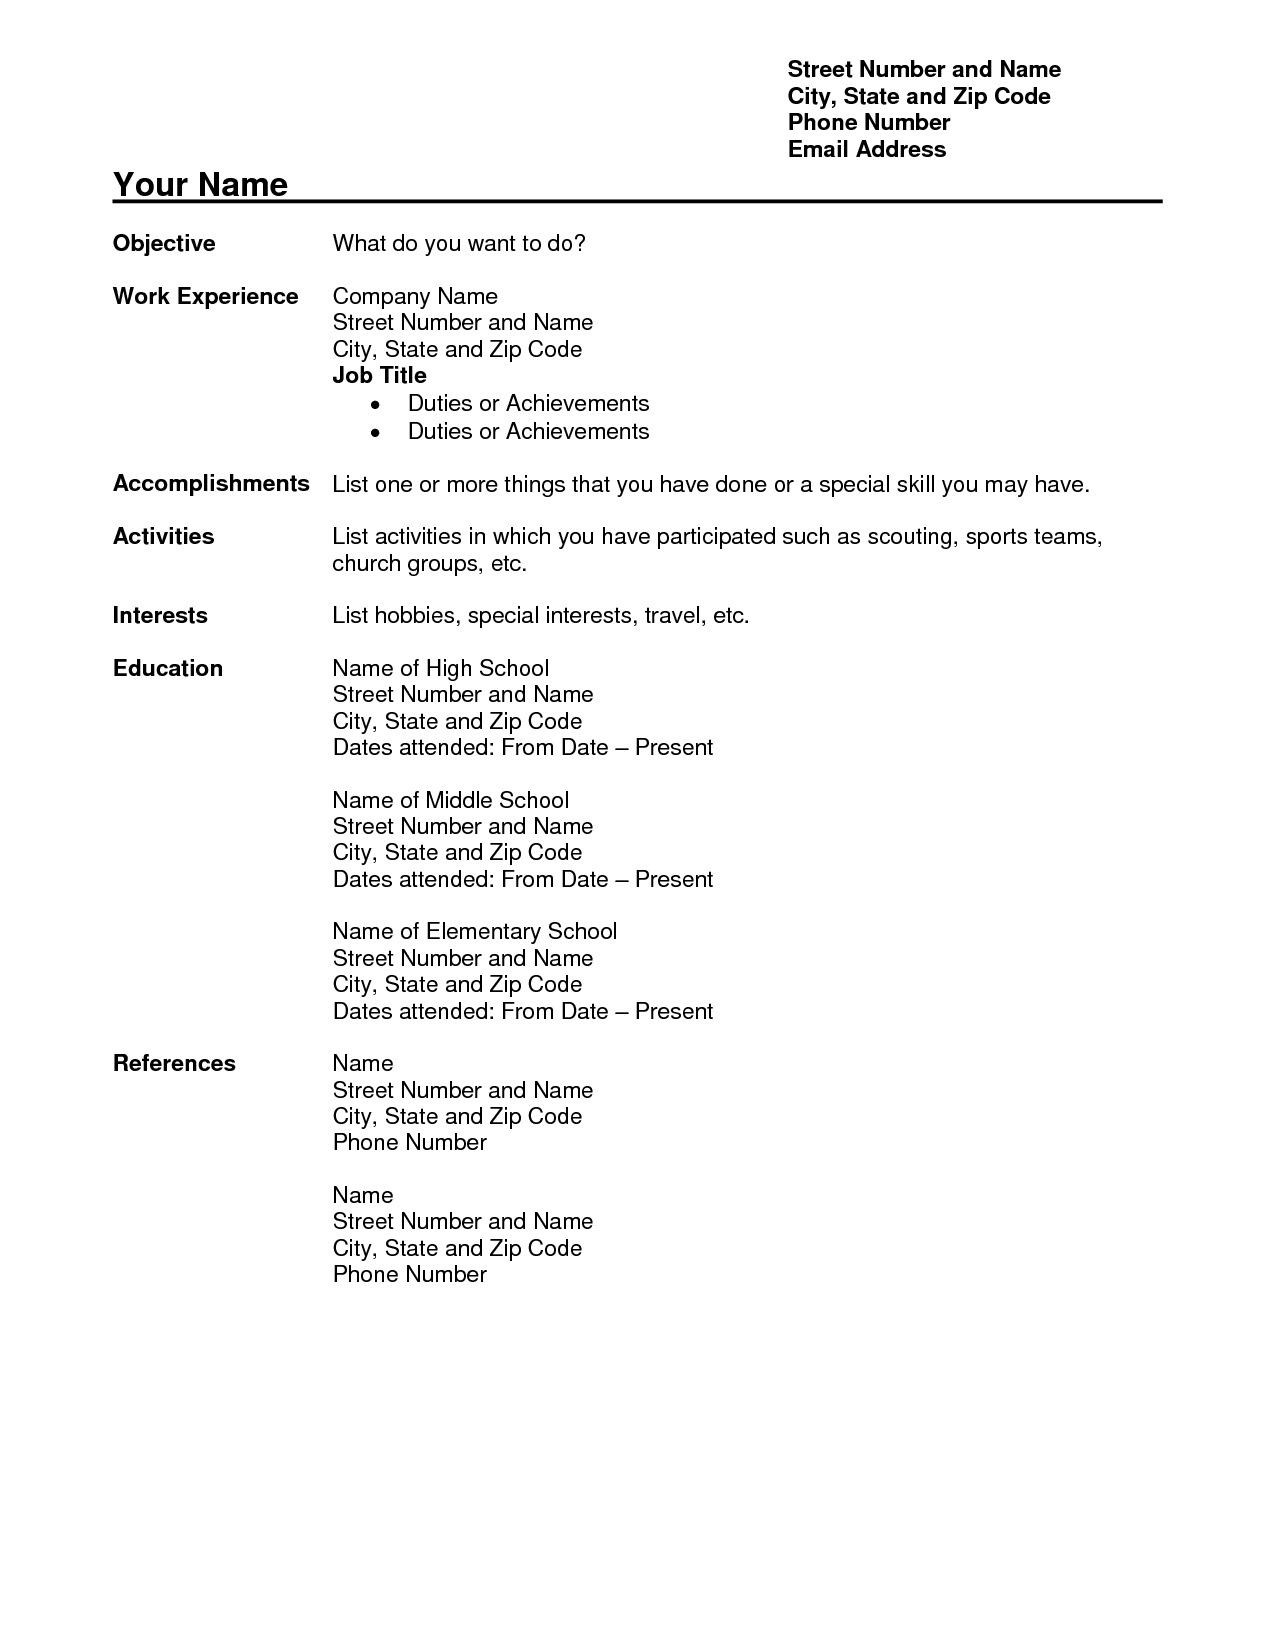 What Is The Best Format For A Resume Free Teacher Resume Templates Download Free Teacher Resume